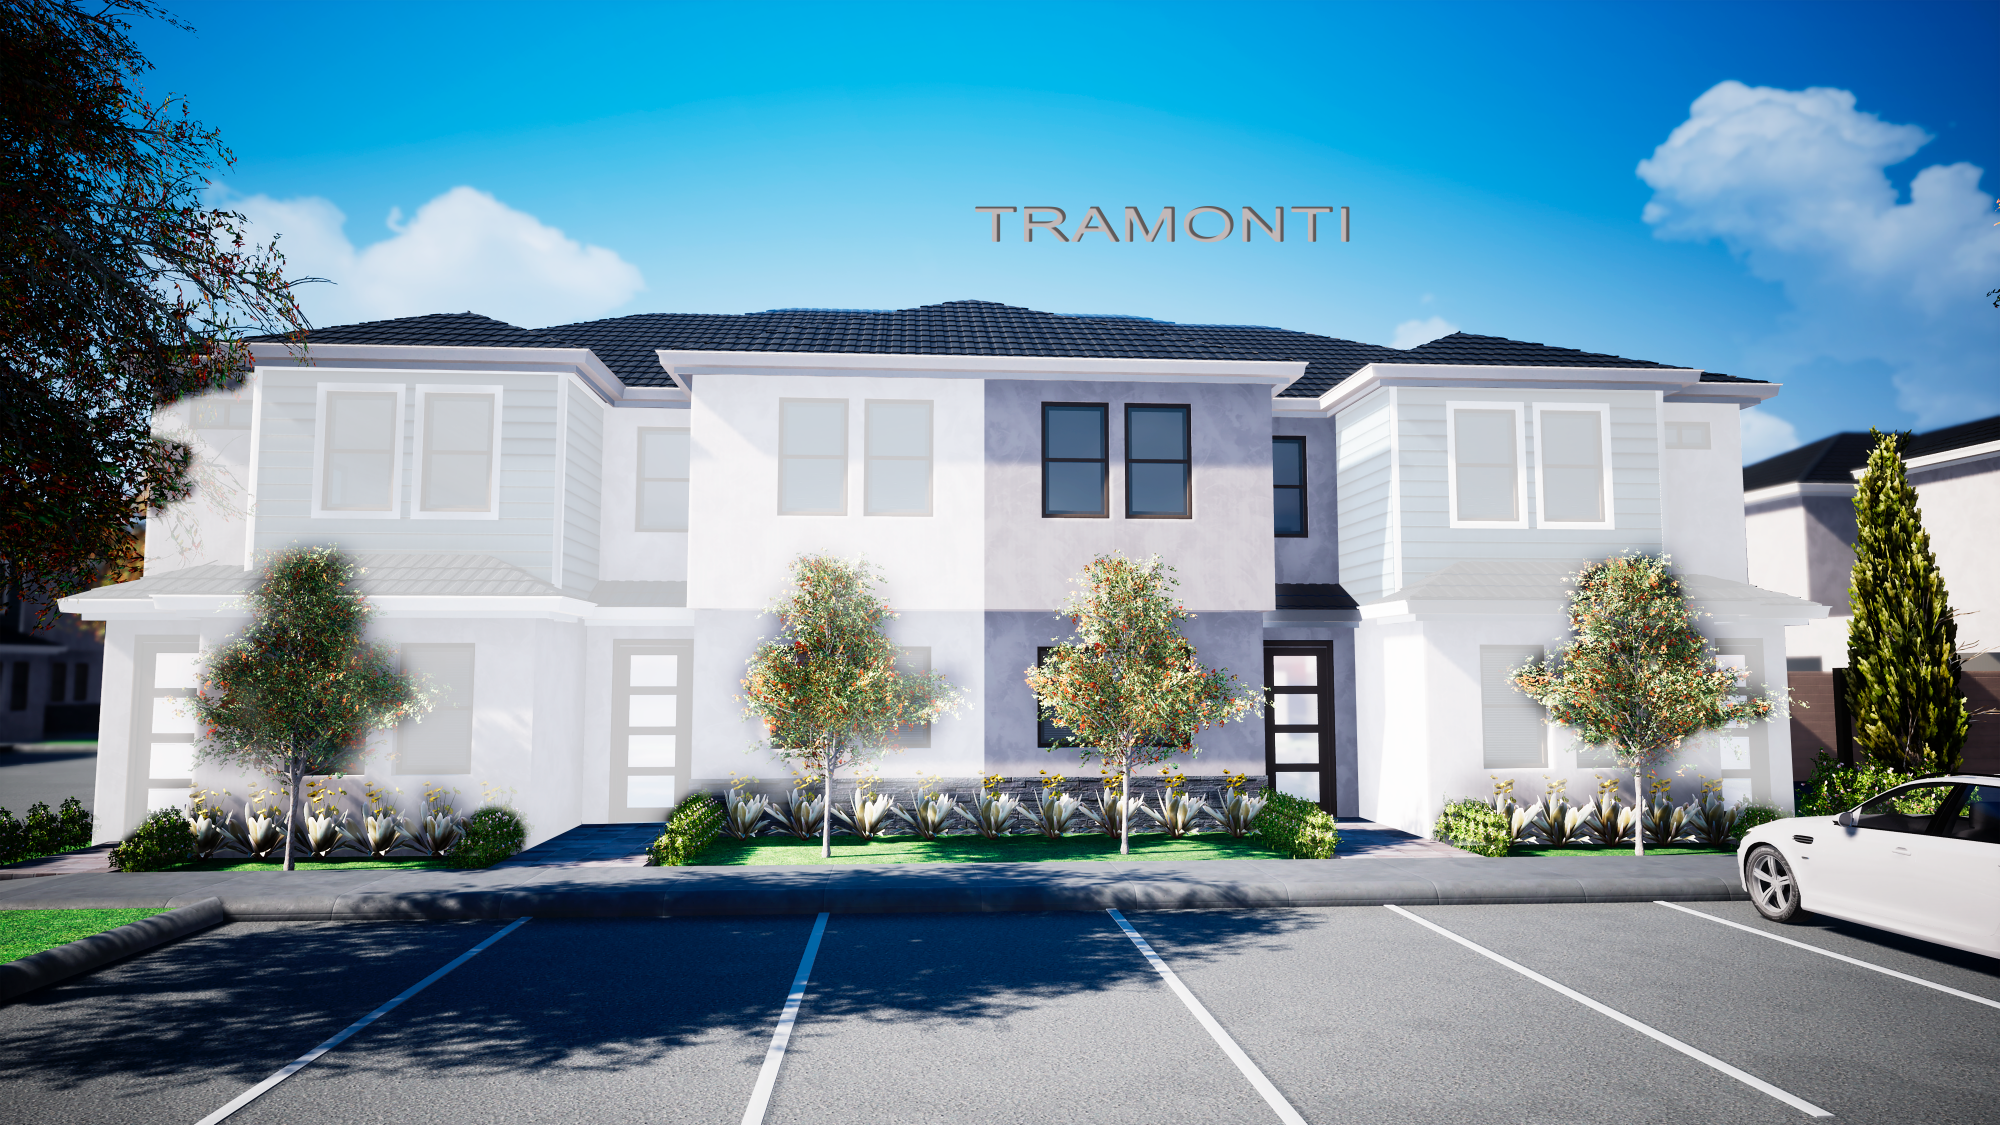 (Contact agent for address) Tramonti